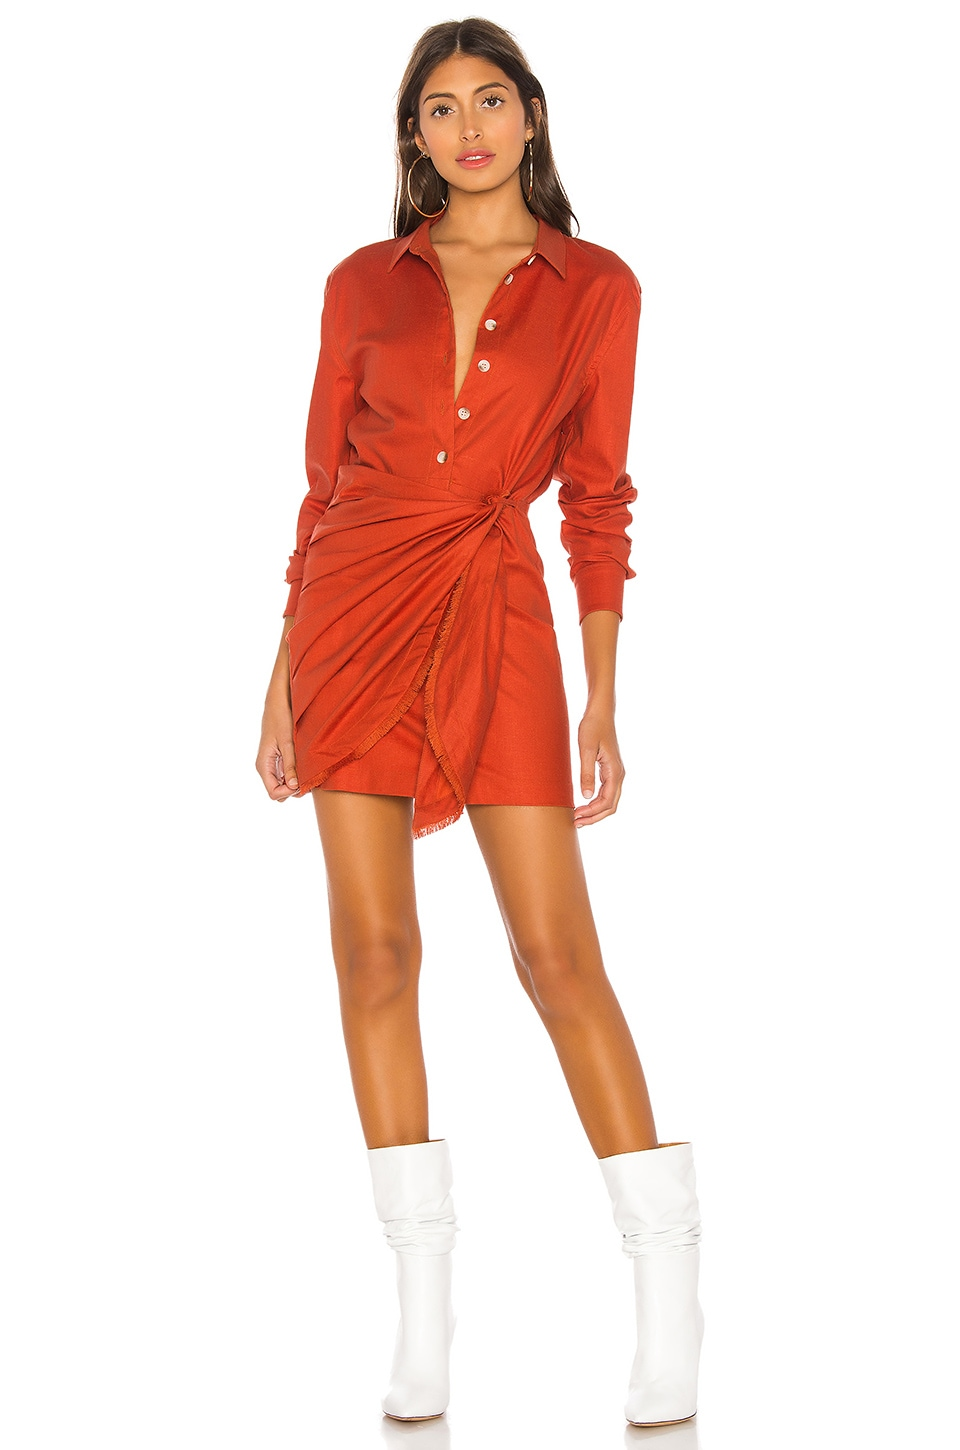 L'Academie The Adelyn Mini Dress in Cherry Red